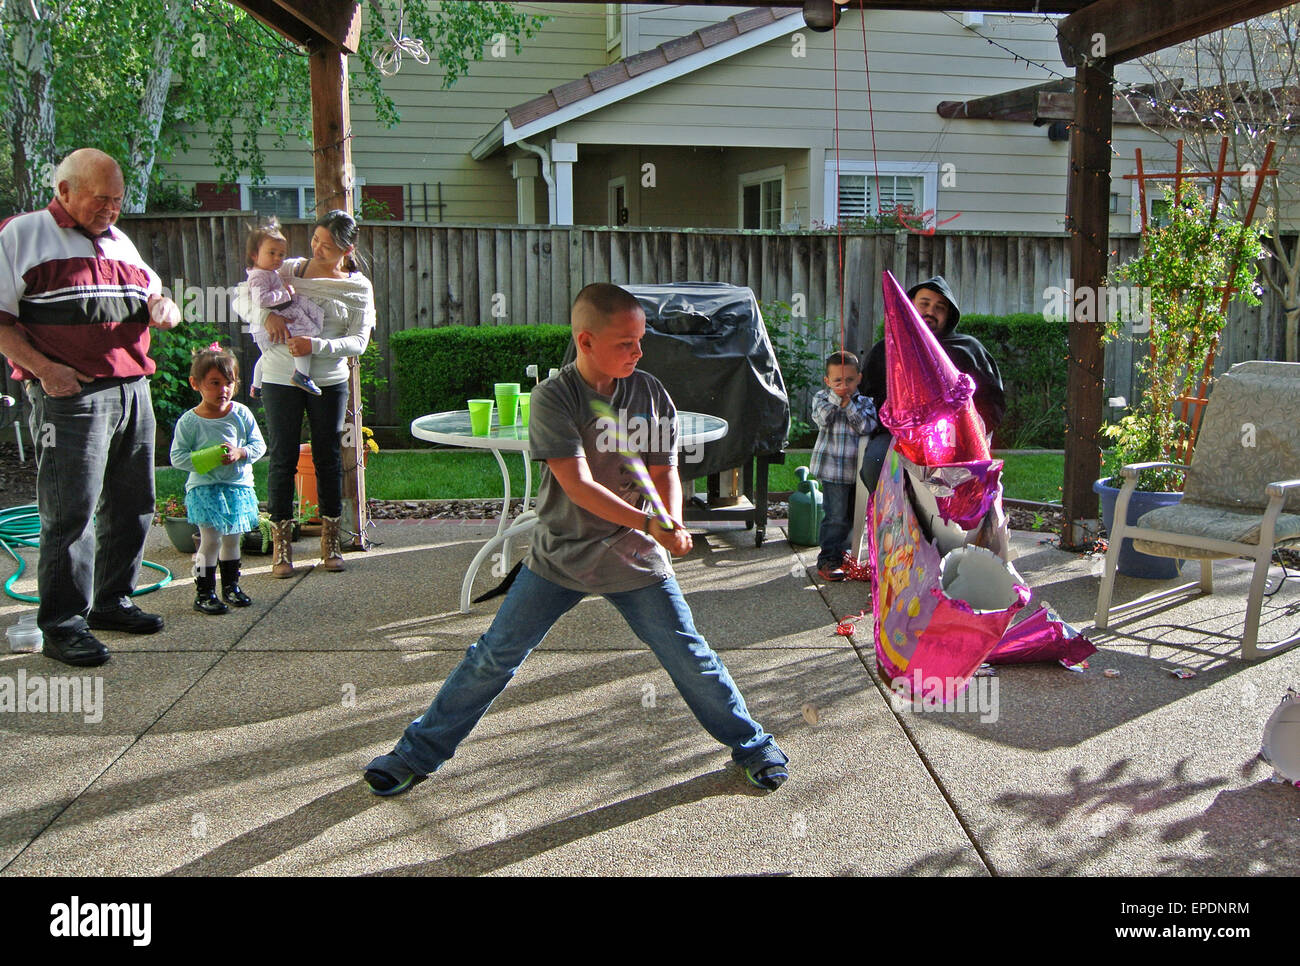 family watches son hit pinata on backyard patio - Stock Image